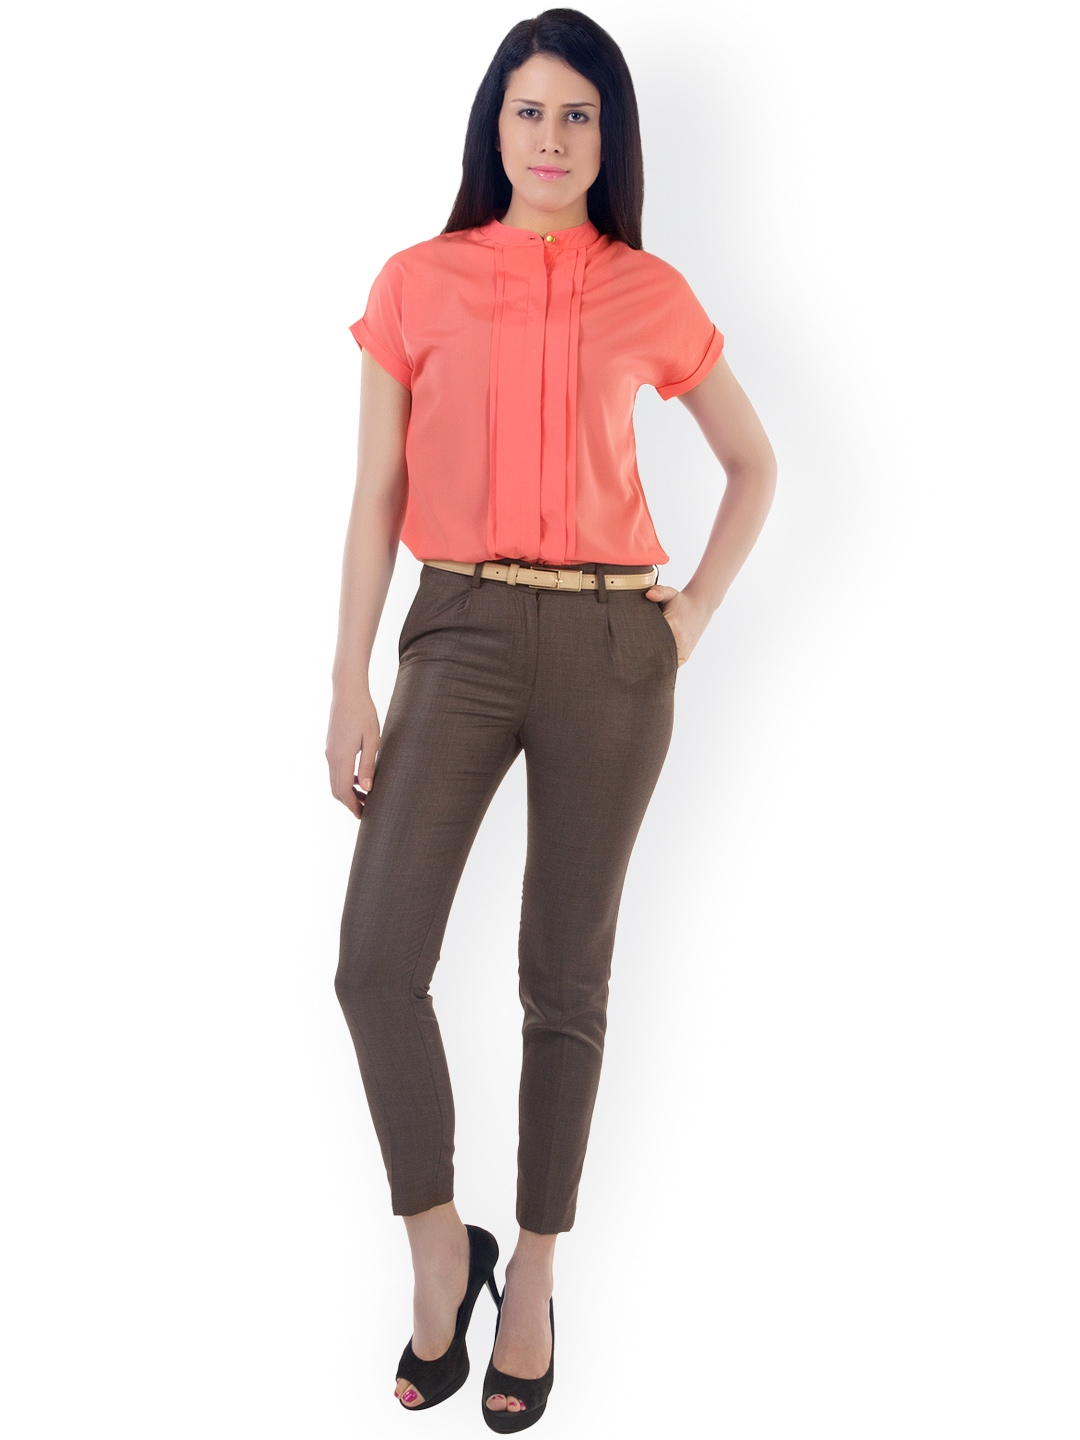 Find women's brown corduroy pants at ShopStyle. Shop the latest collection of women's brown corduroy pants from the most popular stores - all in one Husband Slim Leg Corduroy Trousers - Womens - Dark Brown $ Get a Sale Alert Free Ship + Free Returns at Nordstrom Elizabeth and DSQUARED2 cropped corduroy trousers $ Get a Sale Alert.